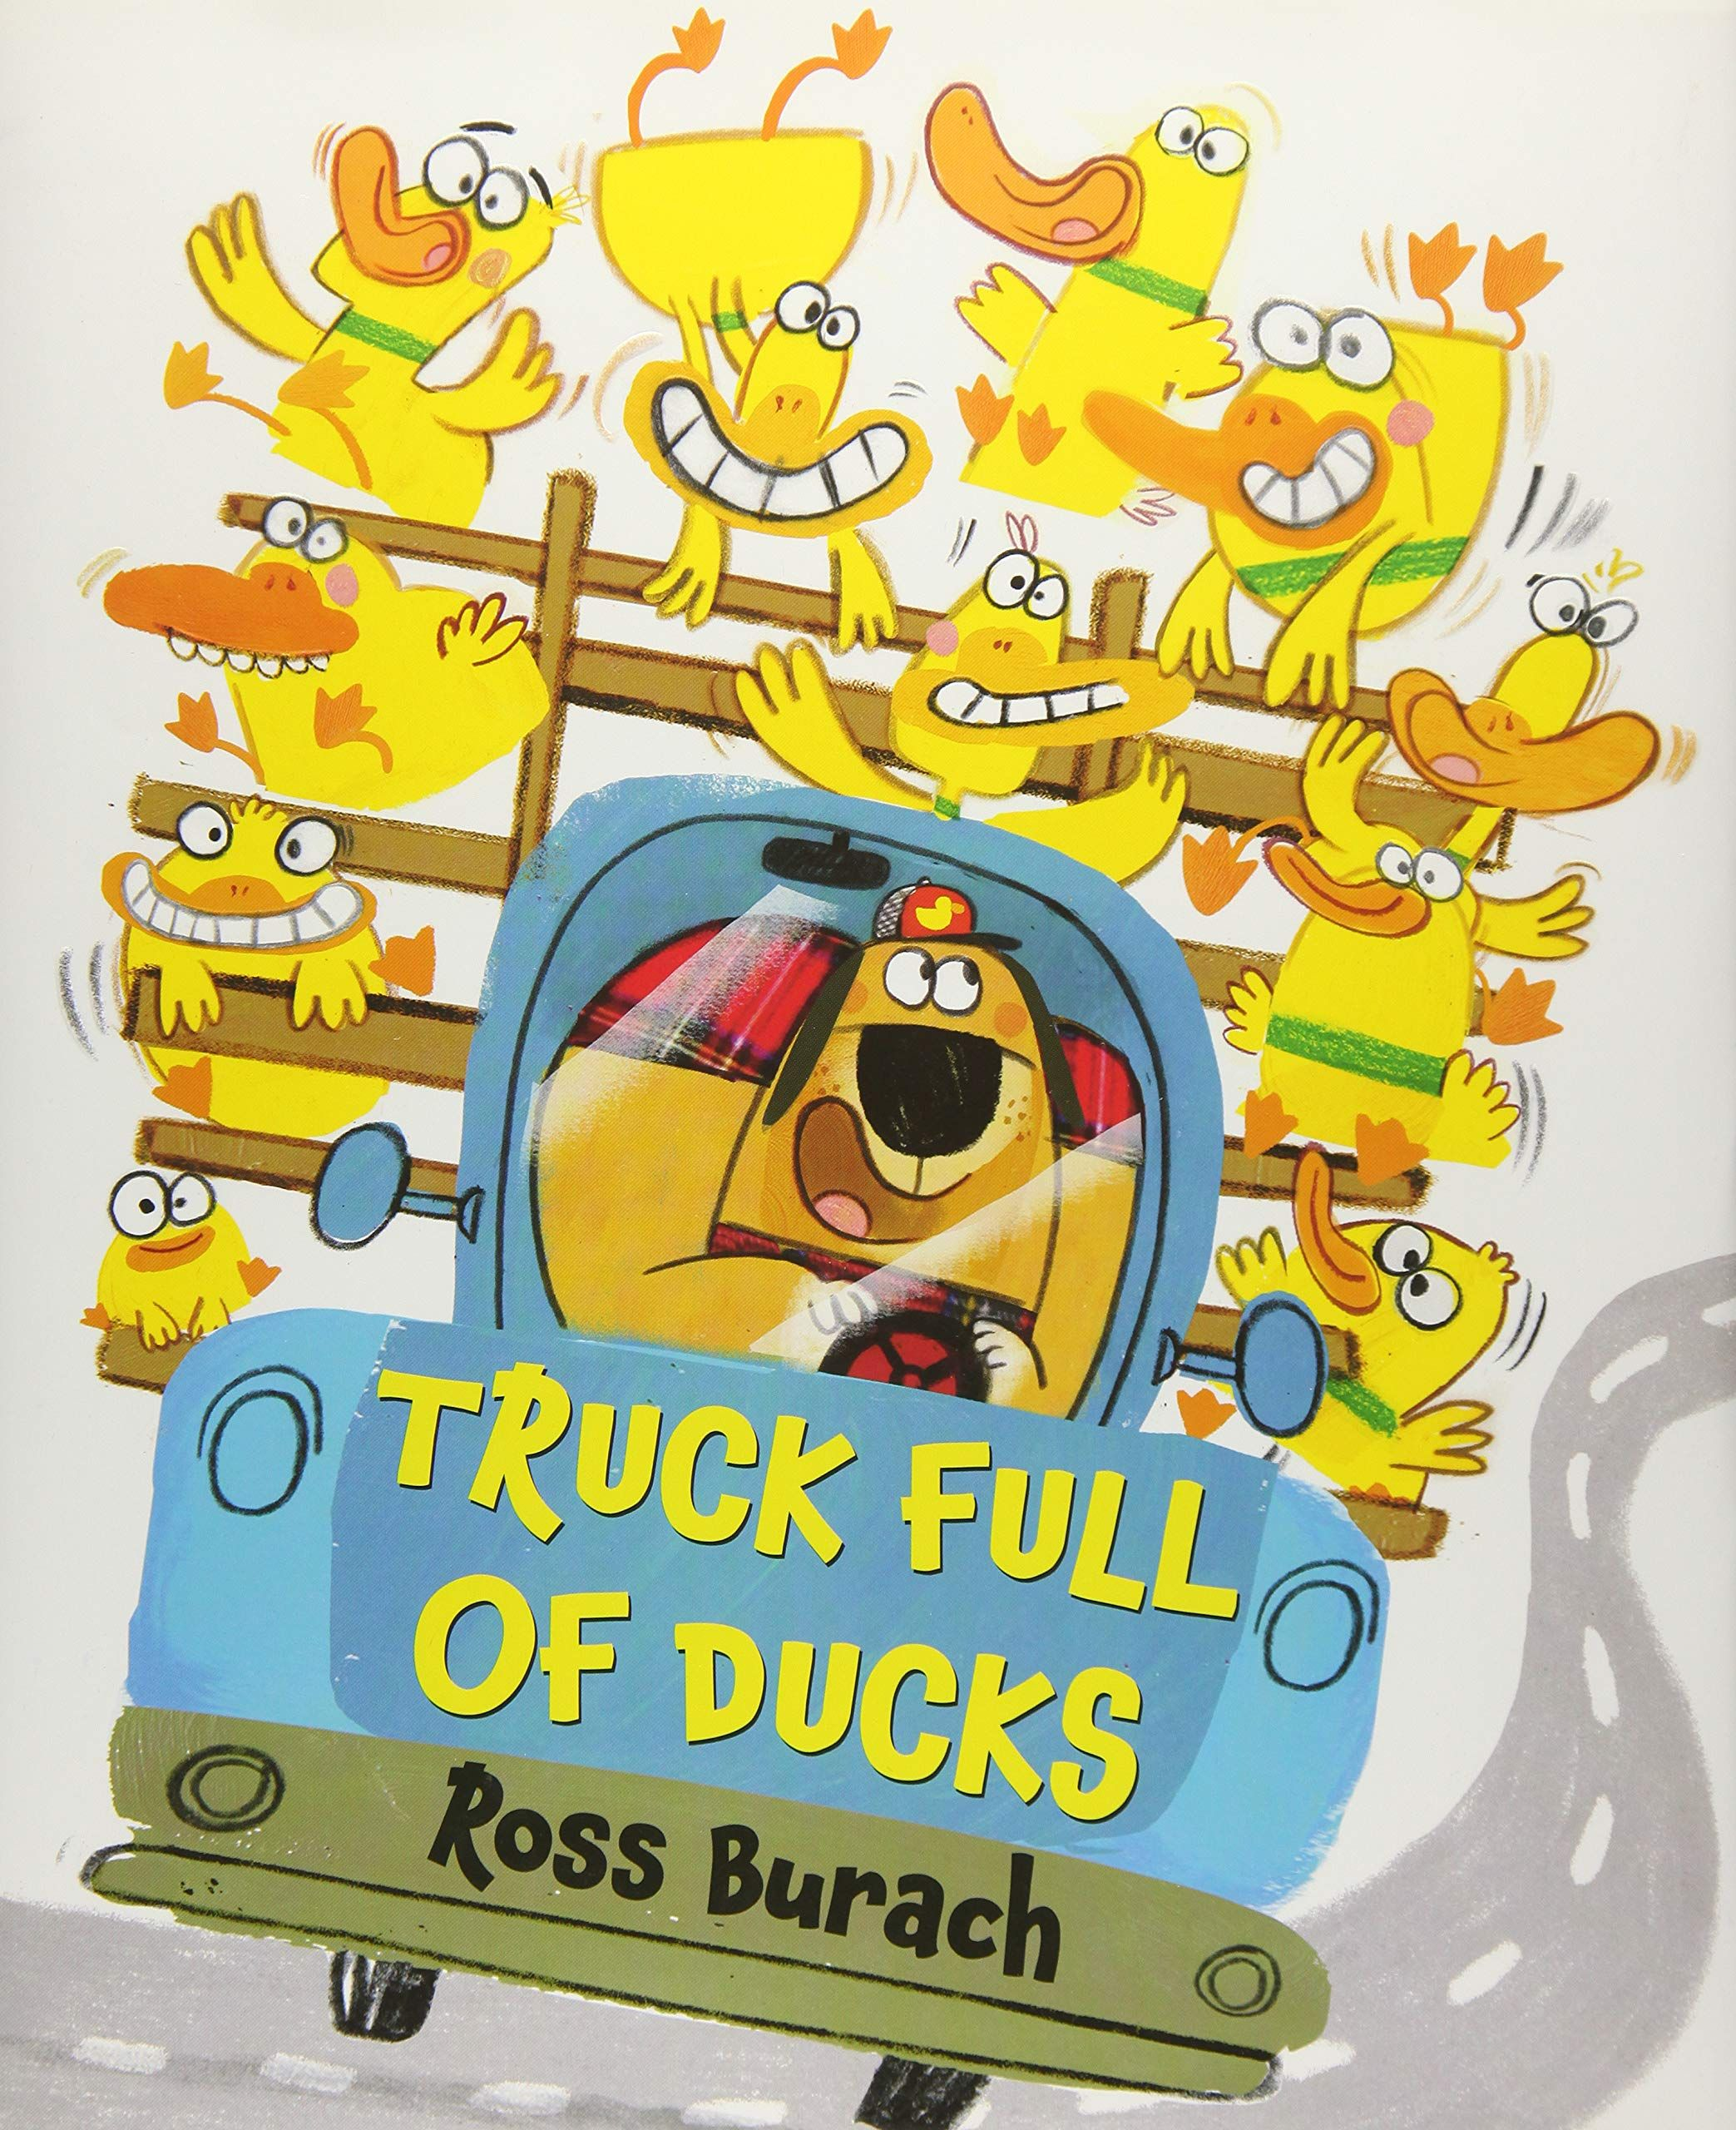 Did You Call For A Truck Full Of Ducks Bernie Is On The